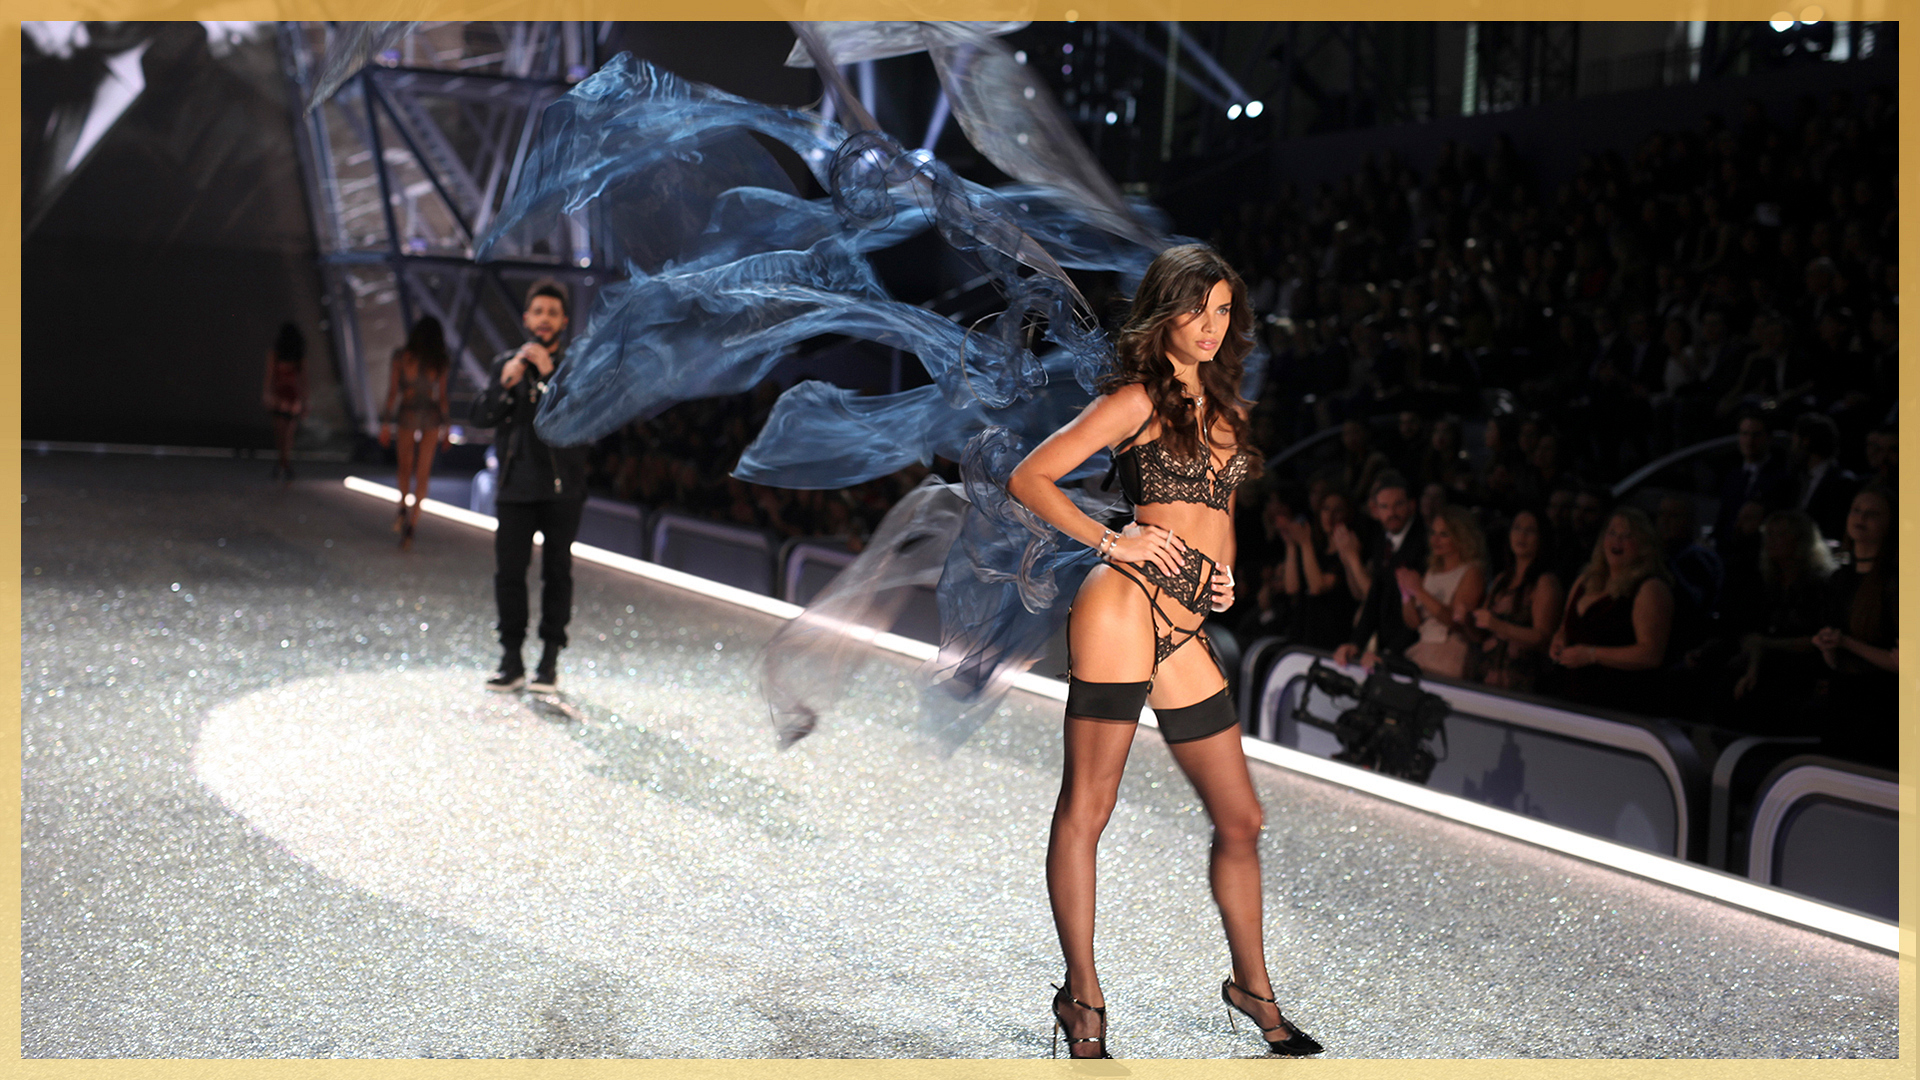 Sara Sampaio's sensational, spin-worthy wings